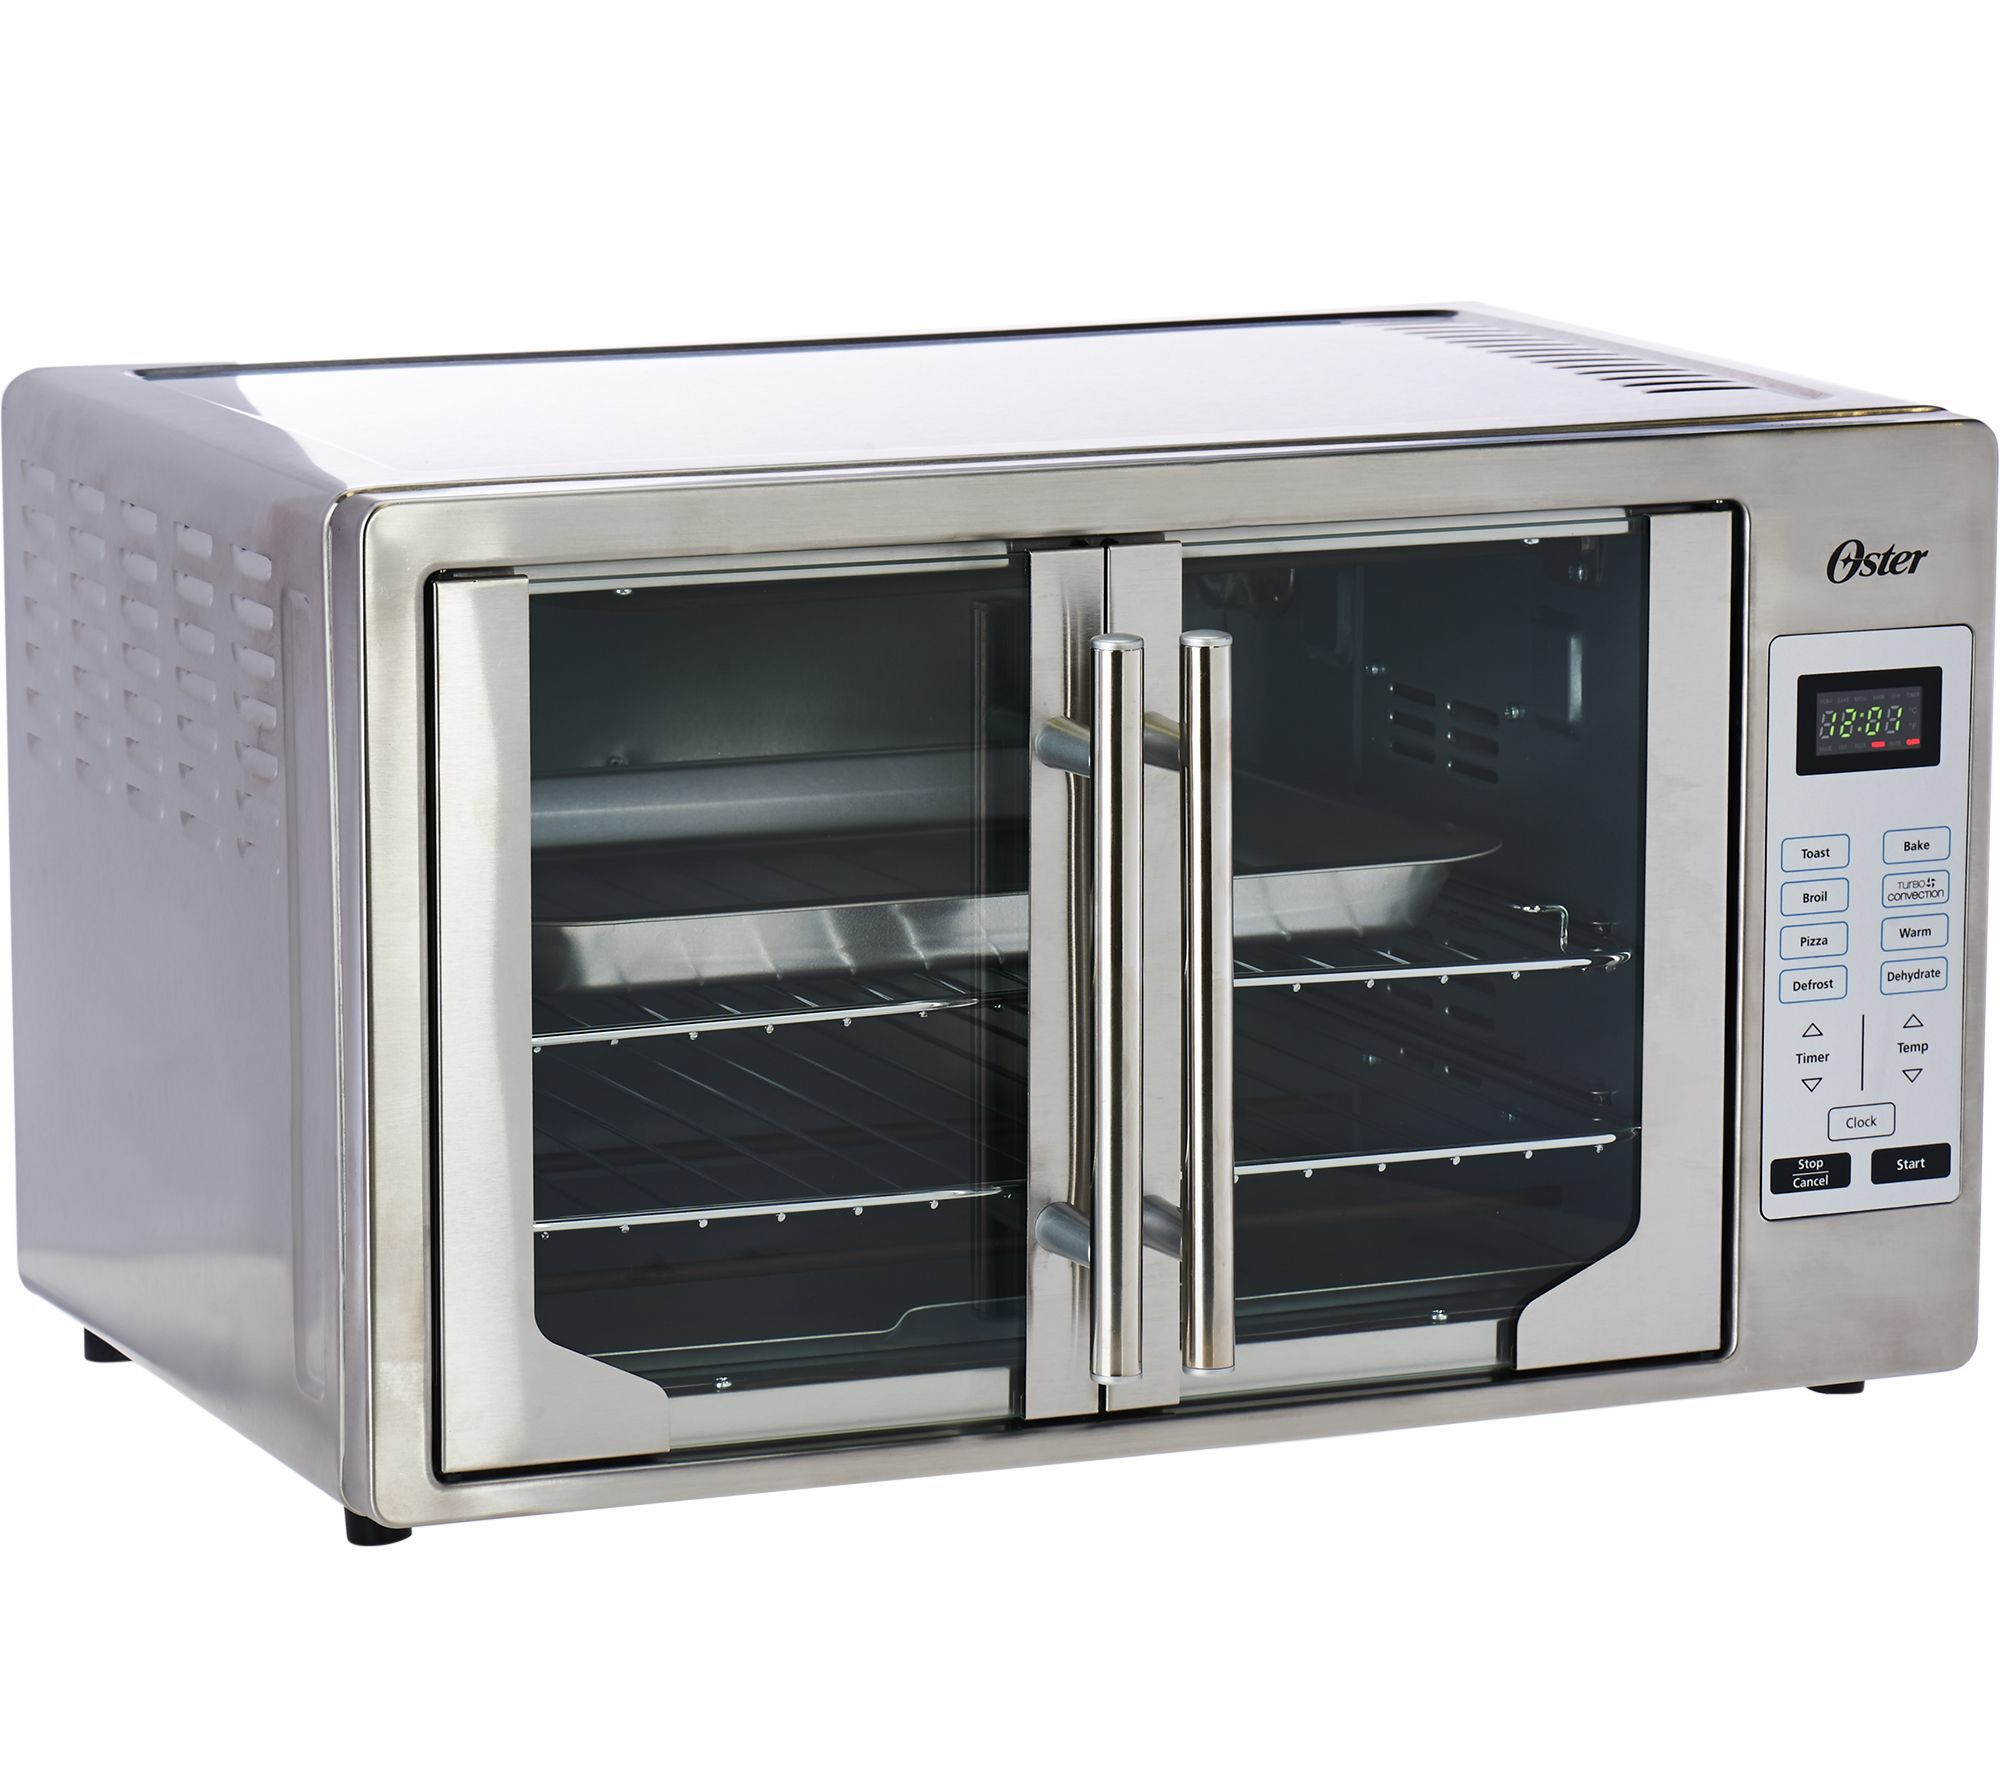 Oster XL Digital Countertop Oven w French Doors